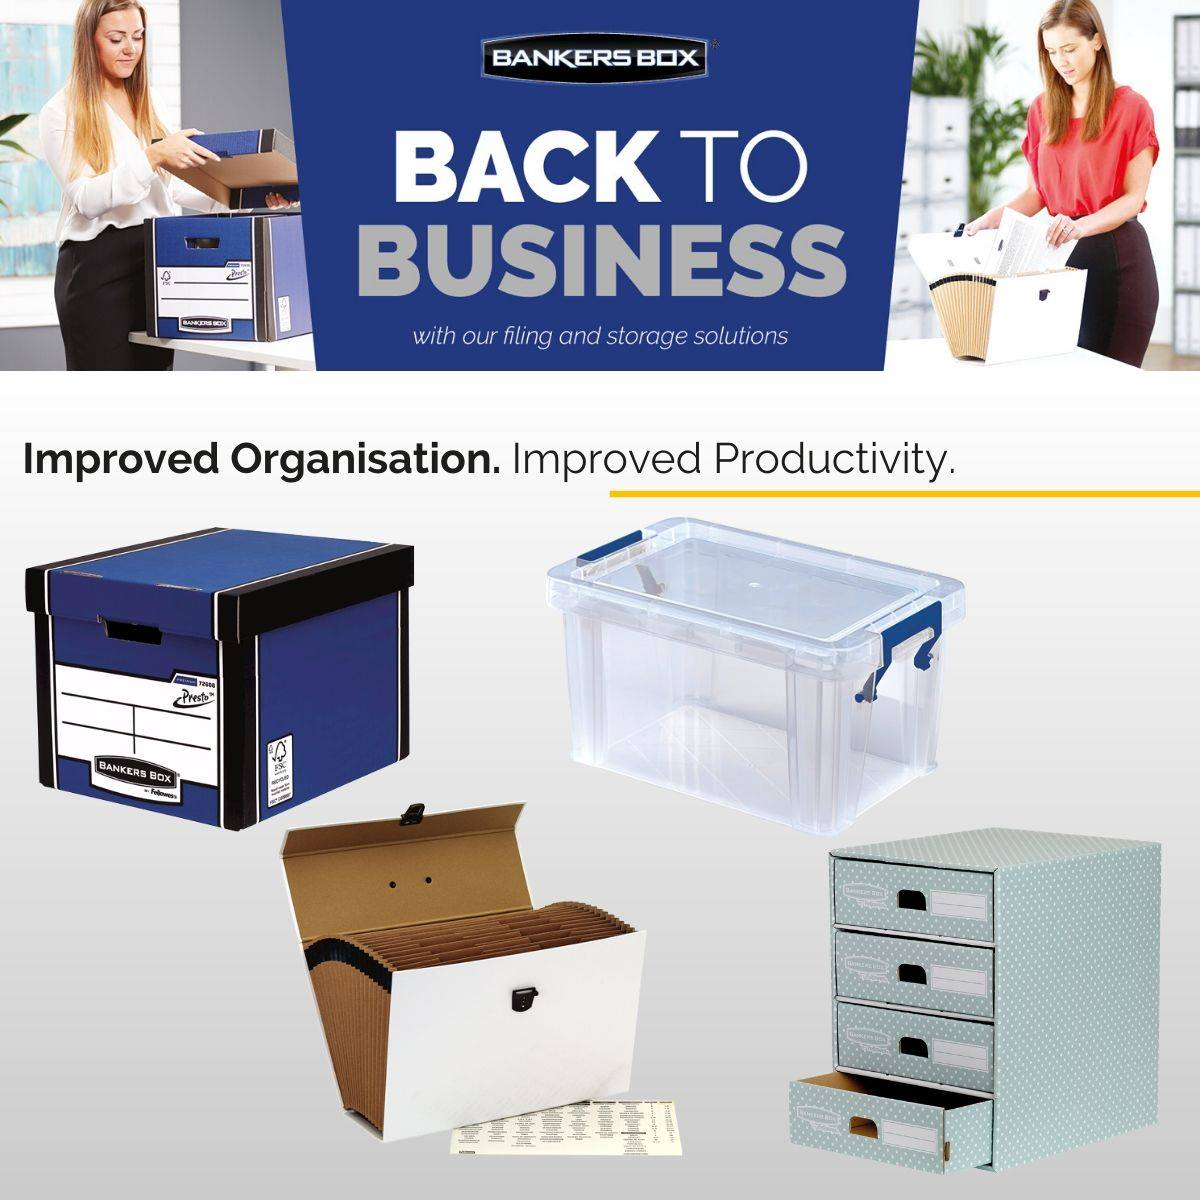 The flexibility to sort and stack your files in our plastic and corrugated storage boxes 🗃, allows for a clean desk policy, efficient access to documents and easy transfer between the home and corporate office.🏡🏢  ➡ https://t.co/X4U6WMBSiC  #BacktoBusiness #BANKERSBOX https://t.co/9PmW9RKuqt